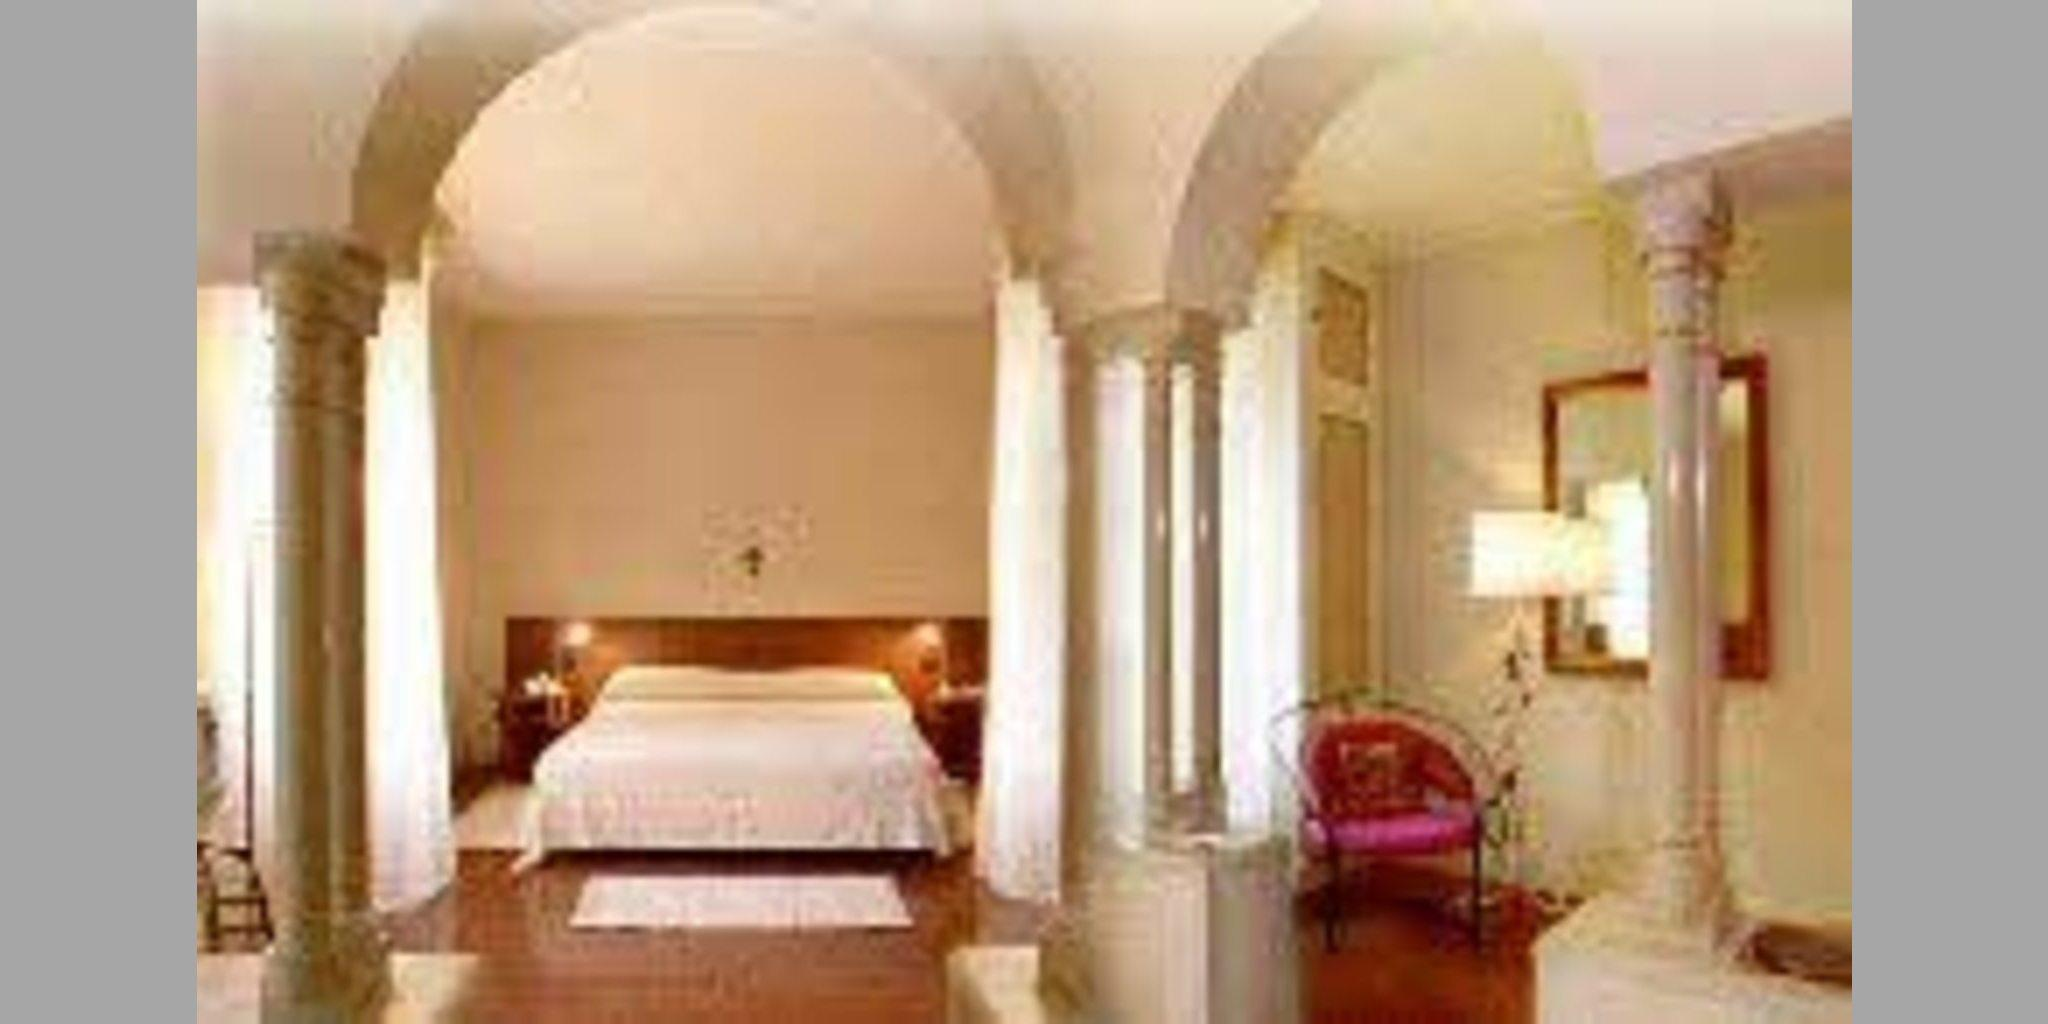 Bed & Breakfast Ravenna - Pasolini